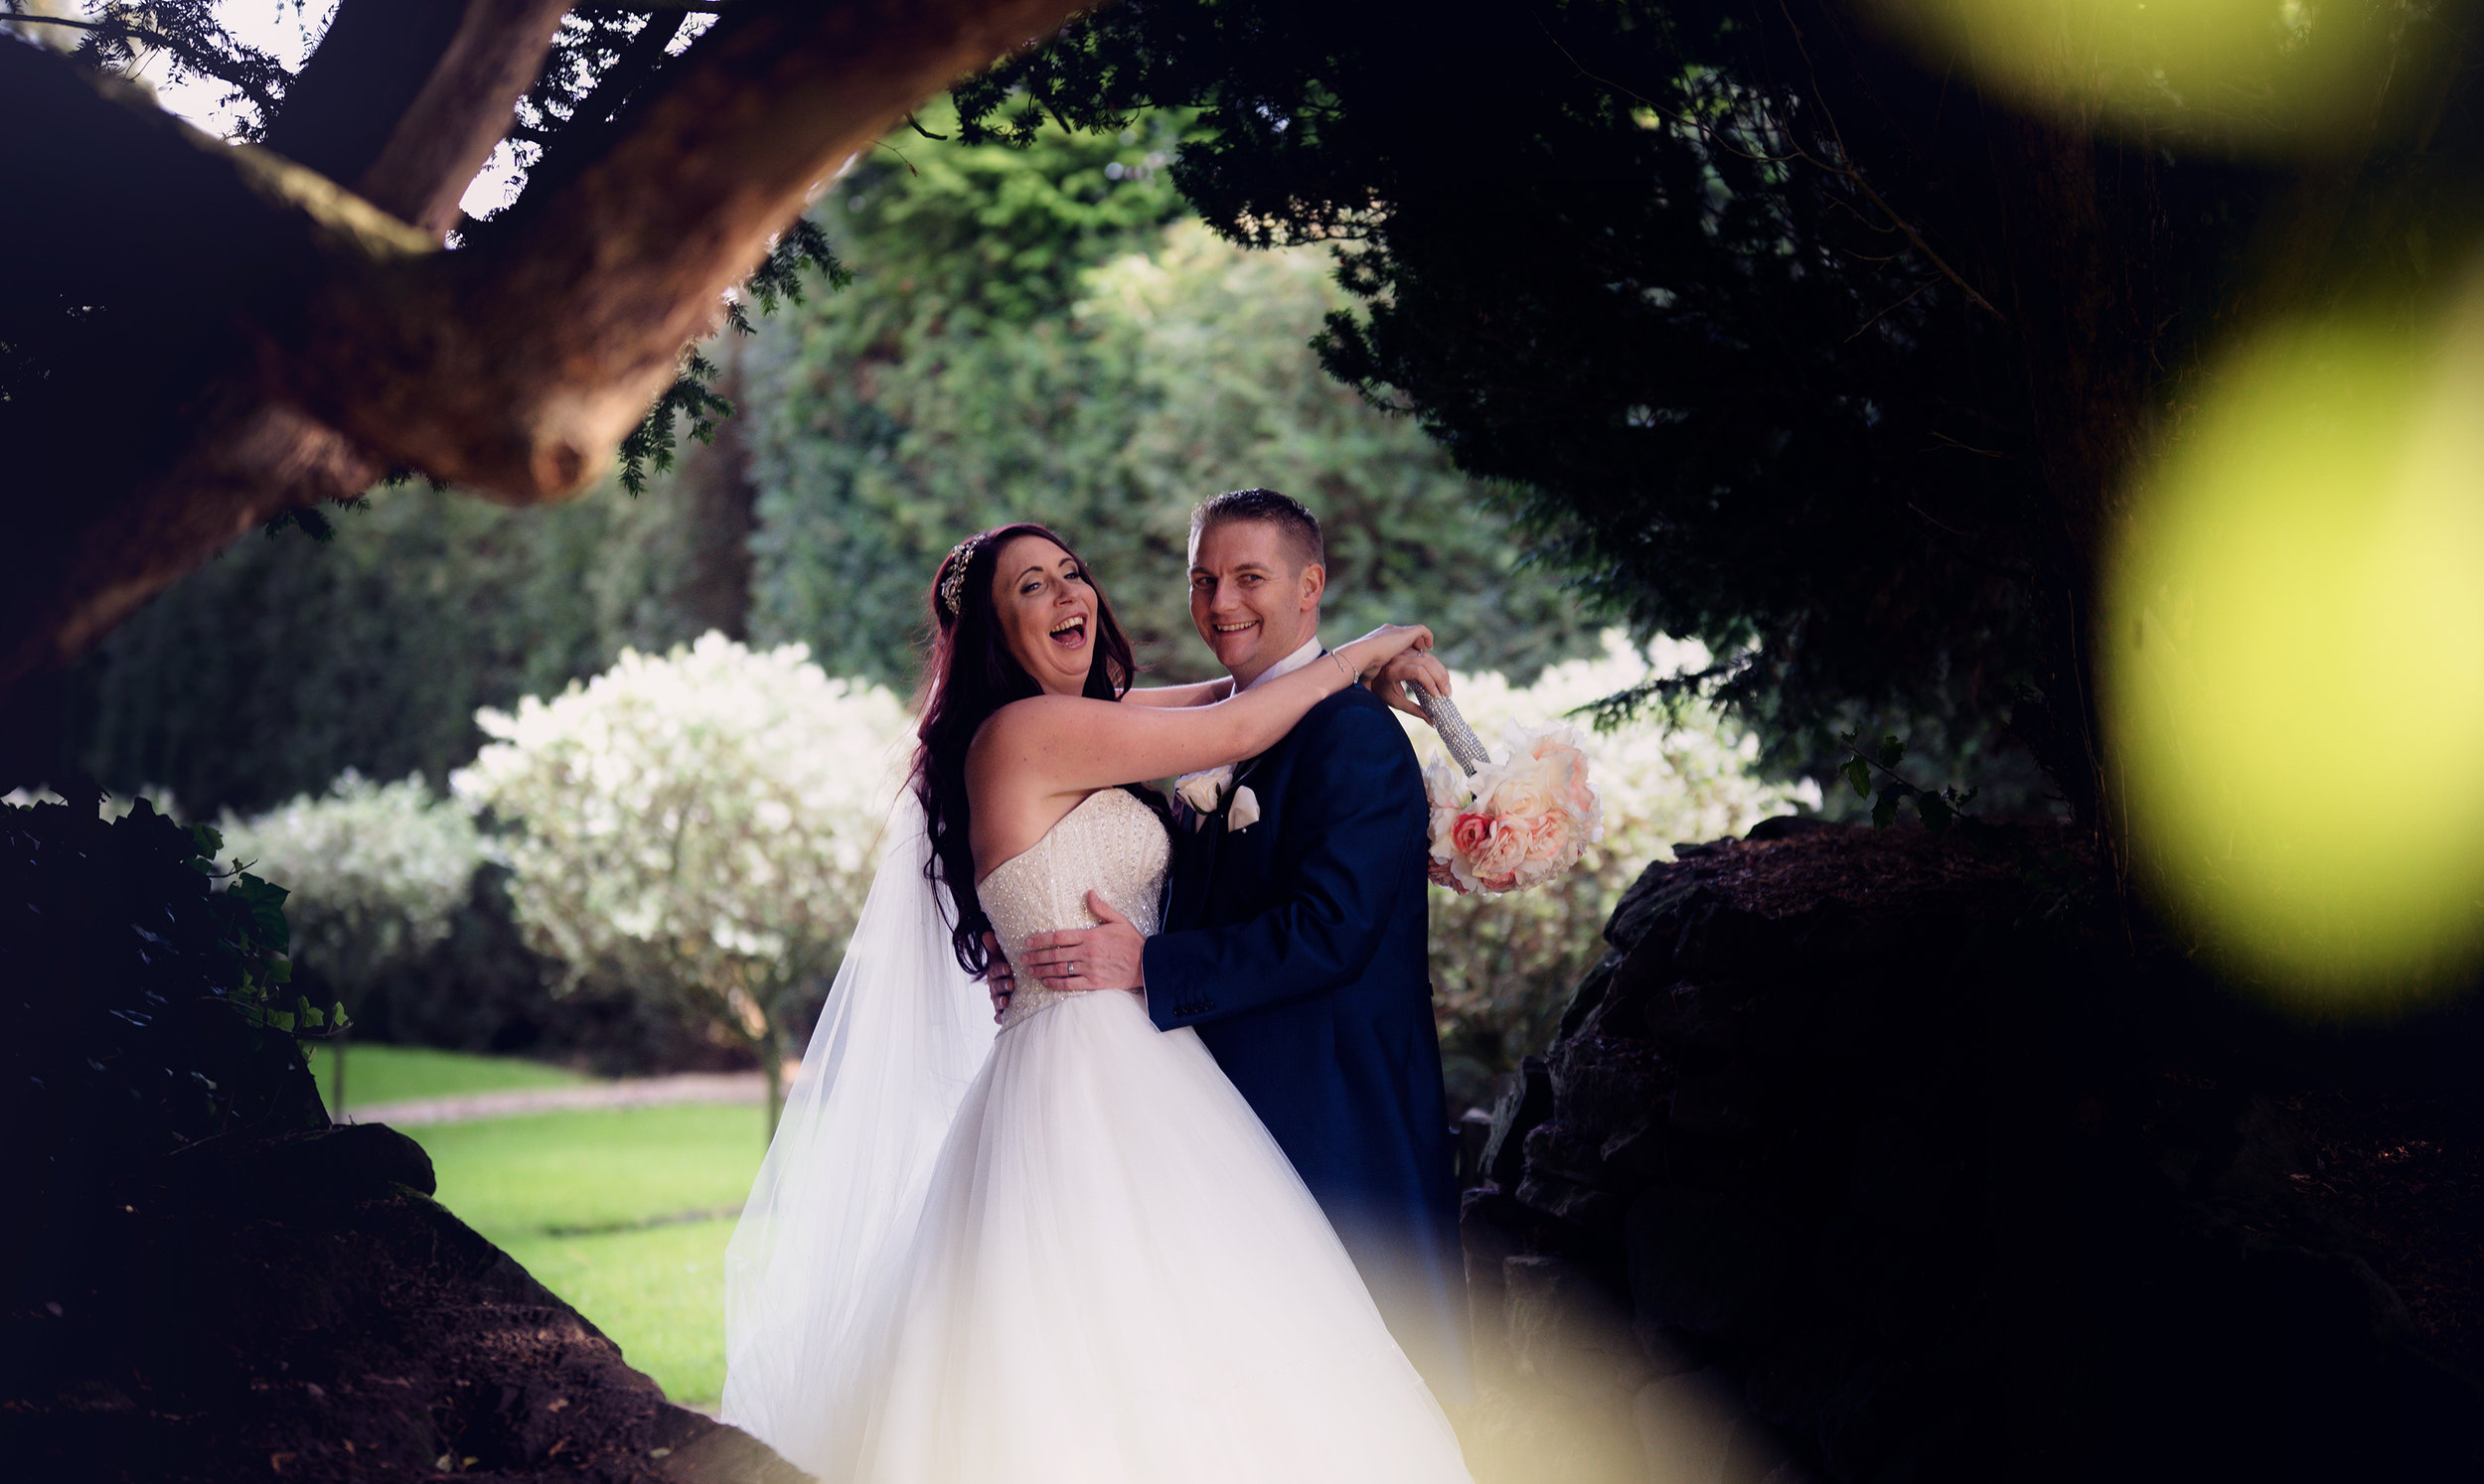 The bride and groom out in the gardens for some fun photos and a chance to escape the madness for a few minutes